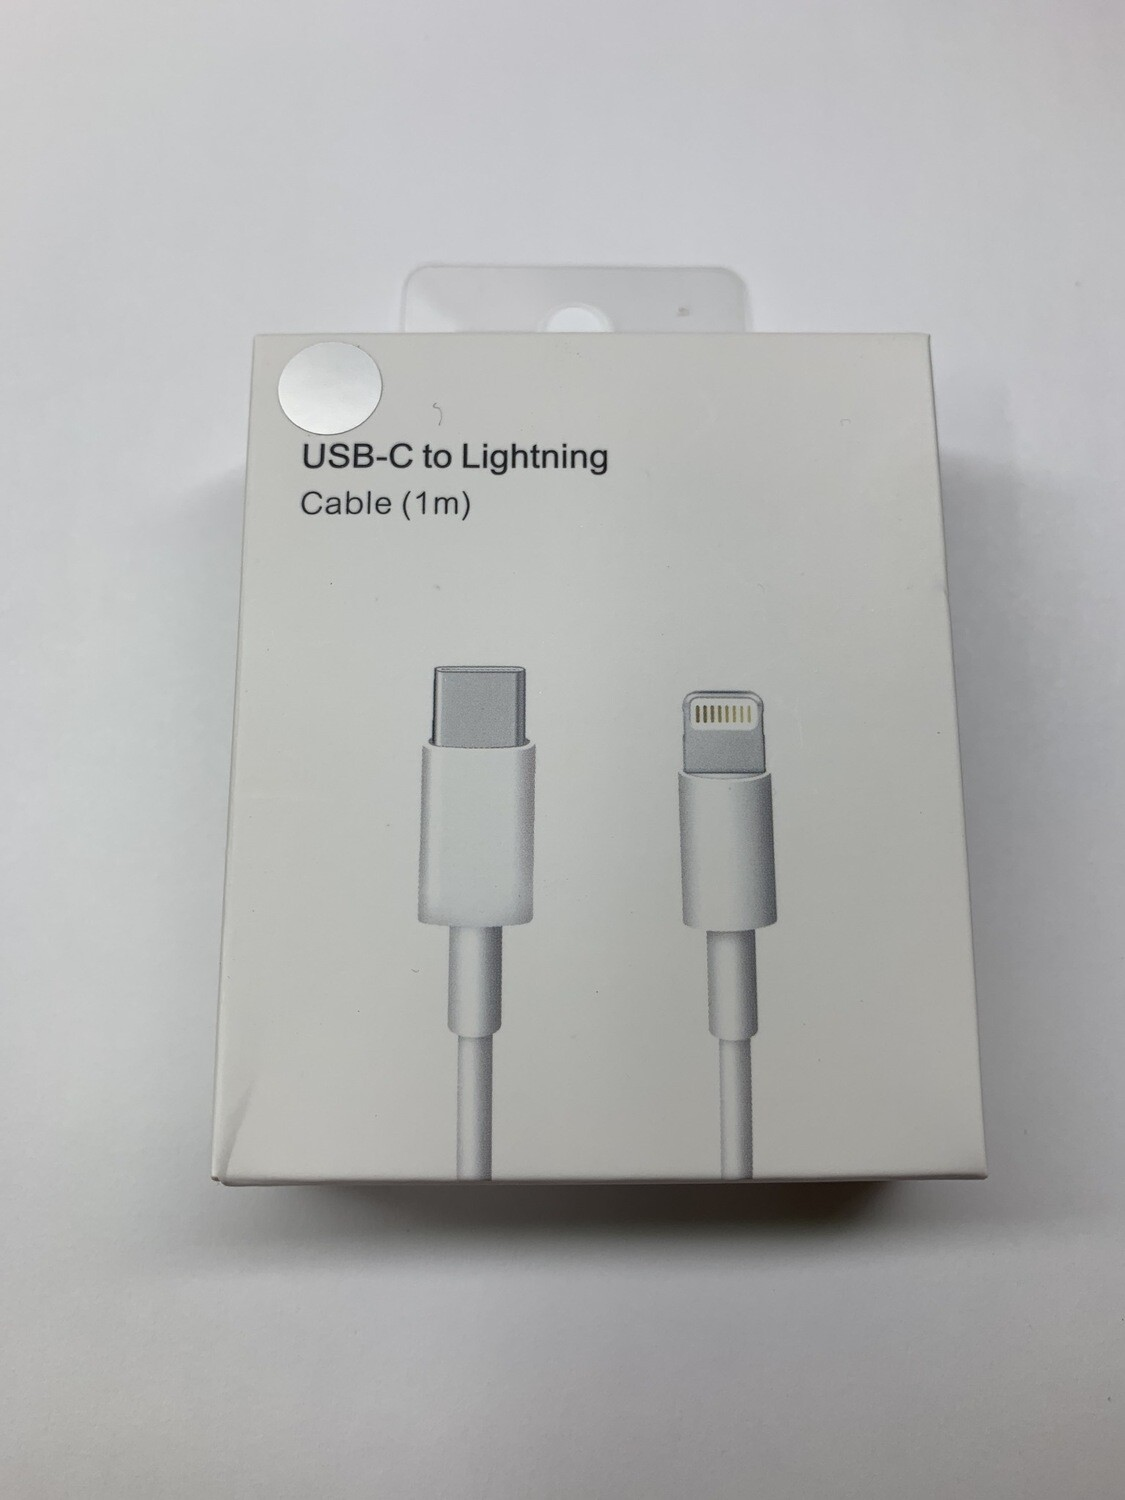 USB -C to Lightning Cable (1M)